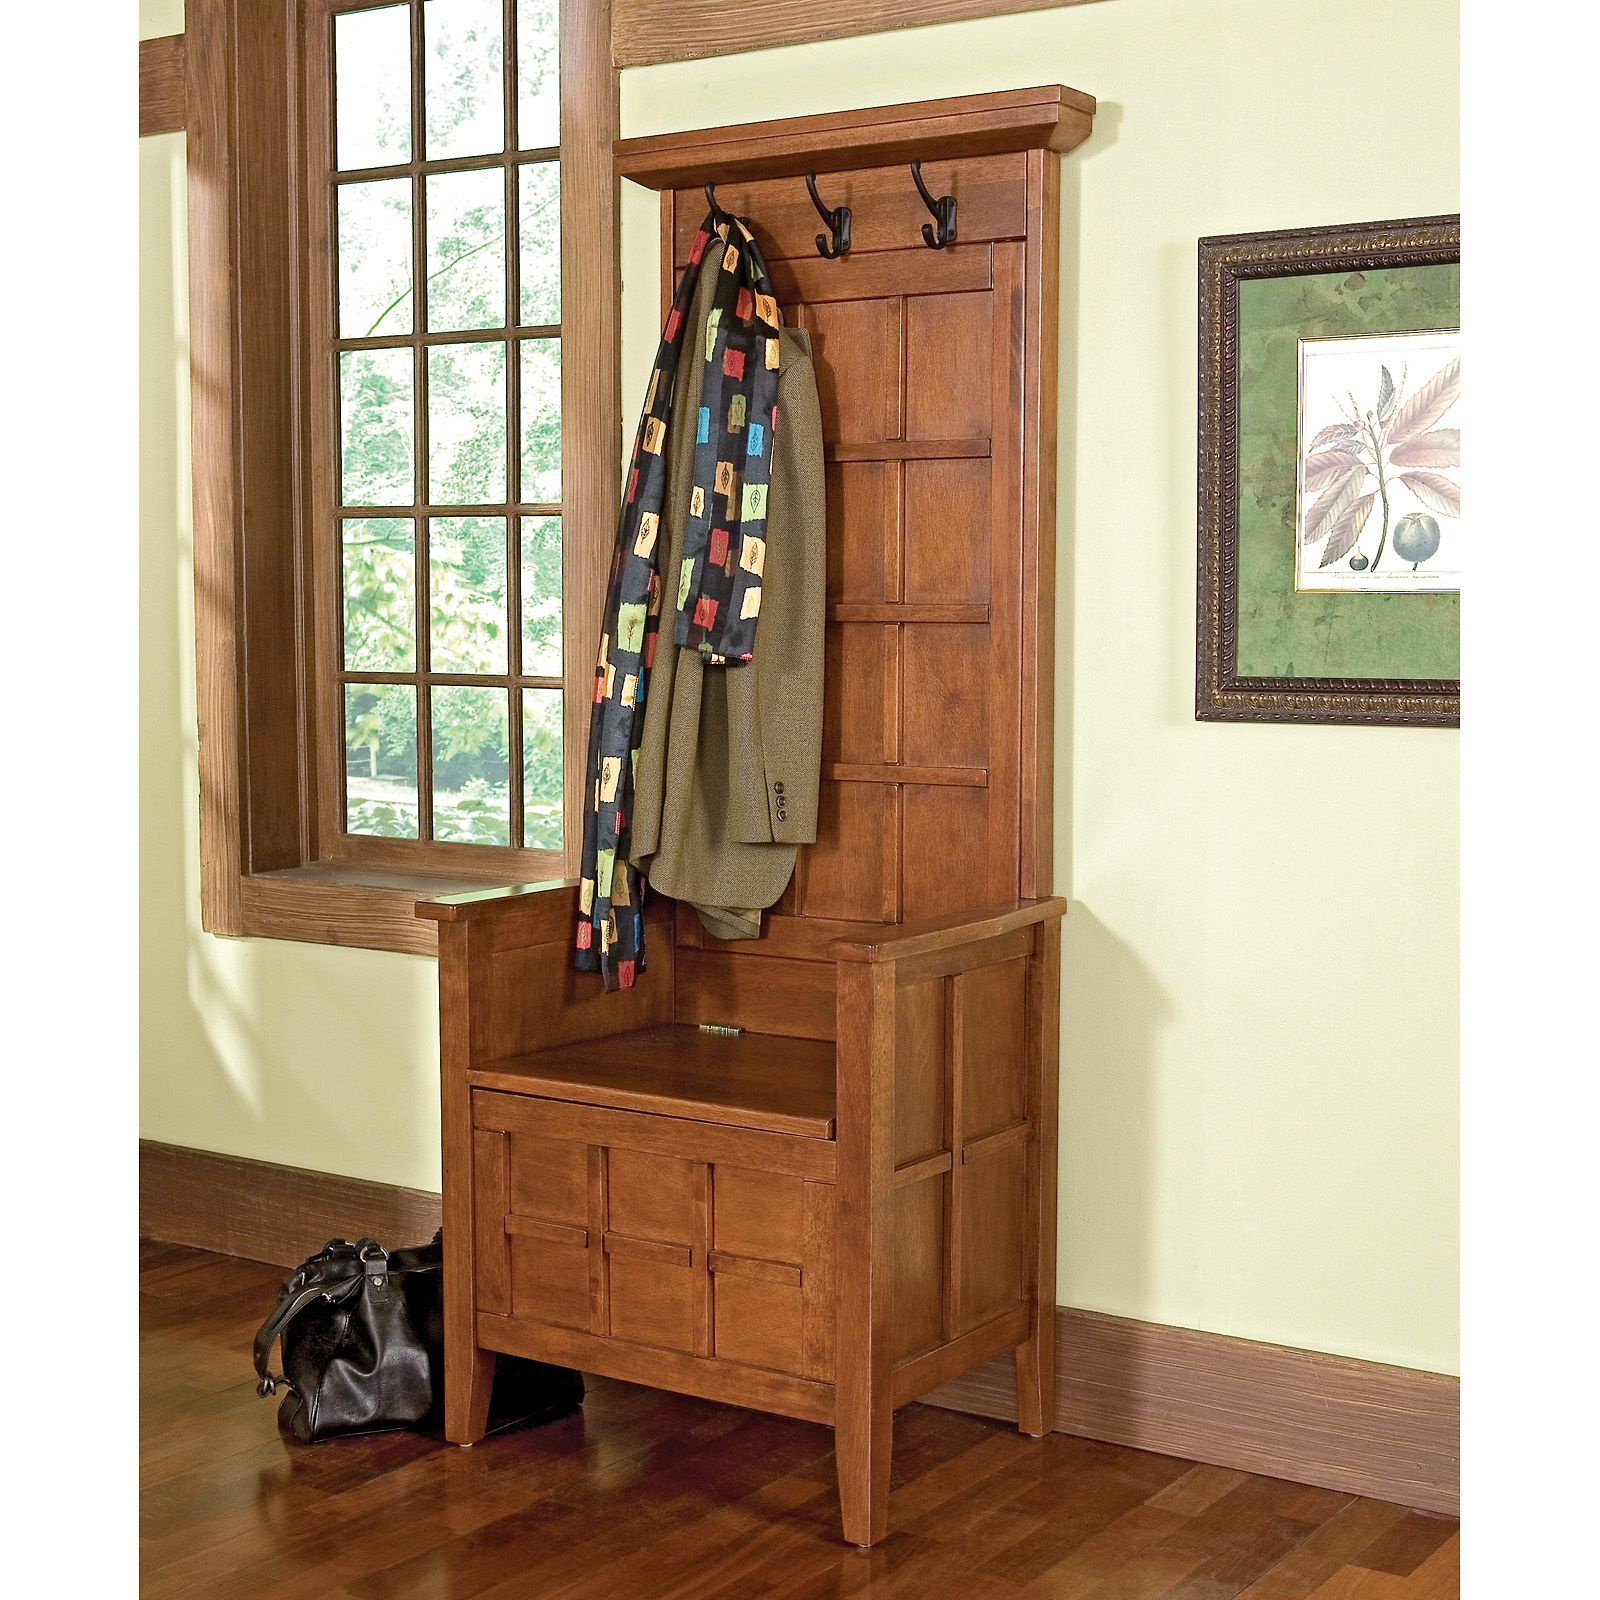 Solid Wood Hall Tree Ideas On Foter In 2021 Oak Storage Bench Hall Tree Storage Bench Indoor Storage Bench